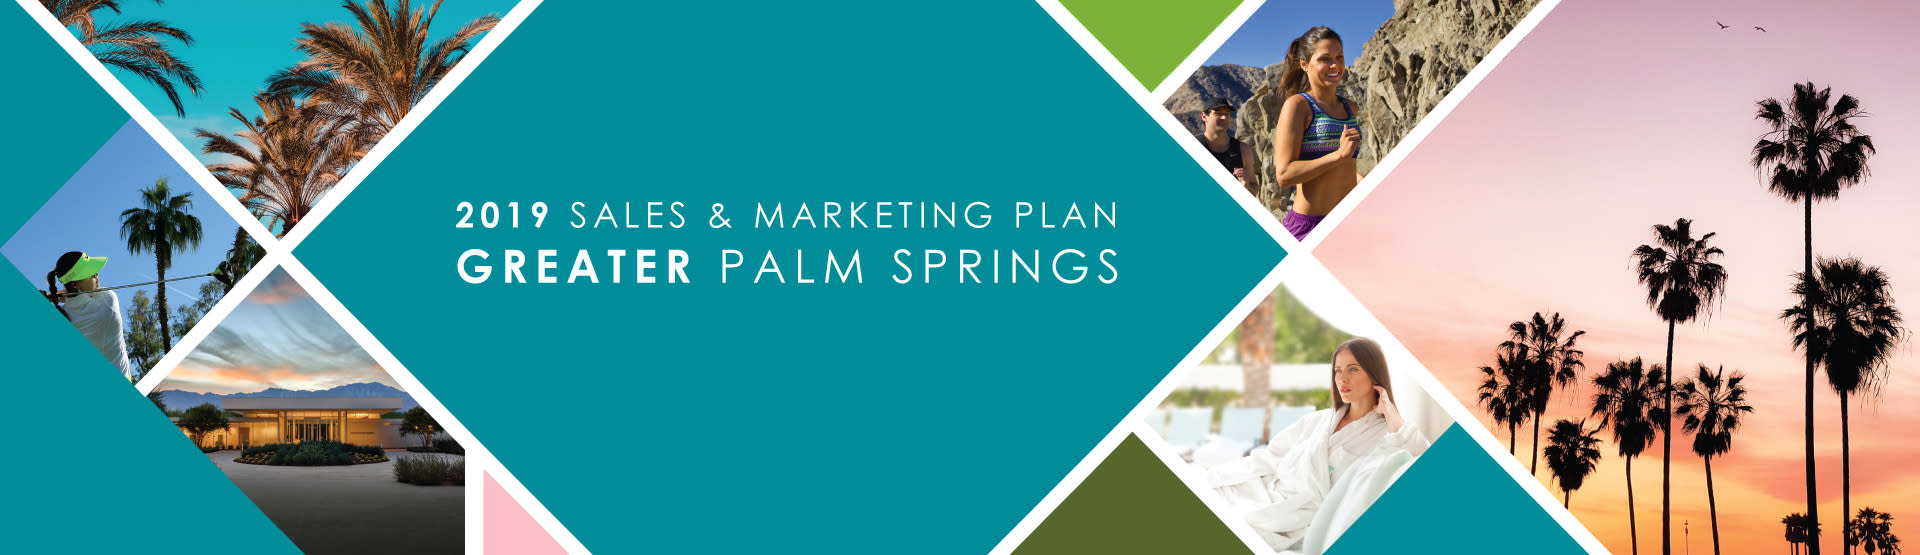 Sales & Marketing Plan cover